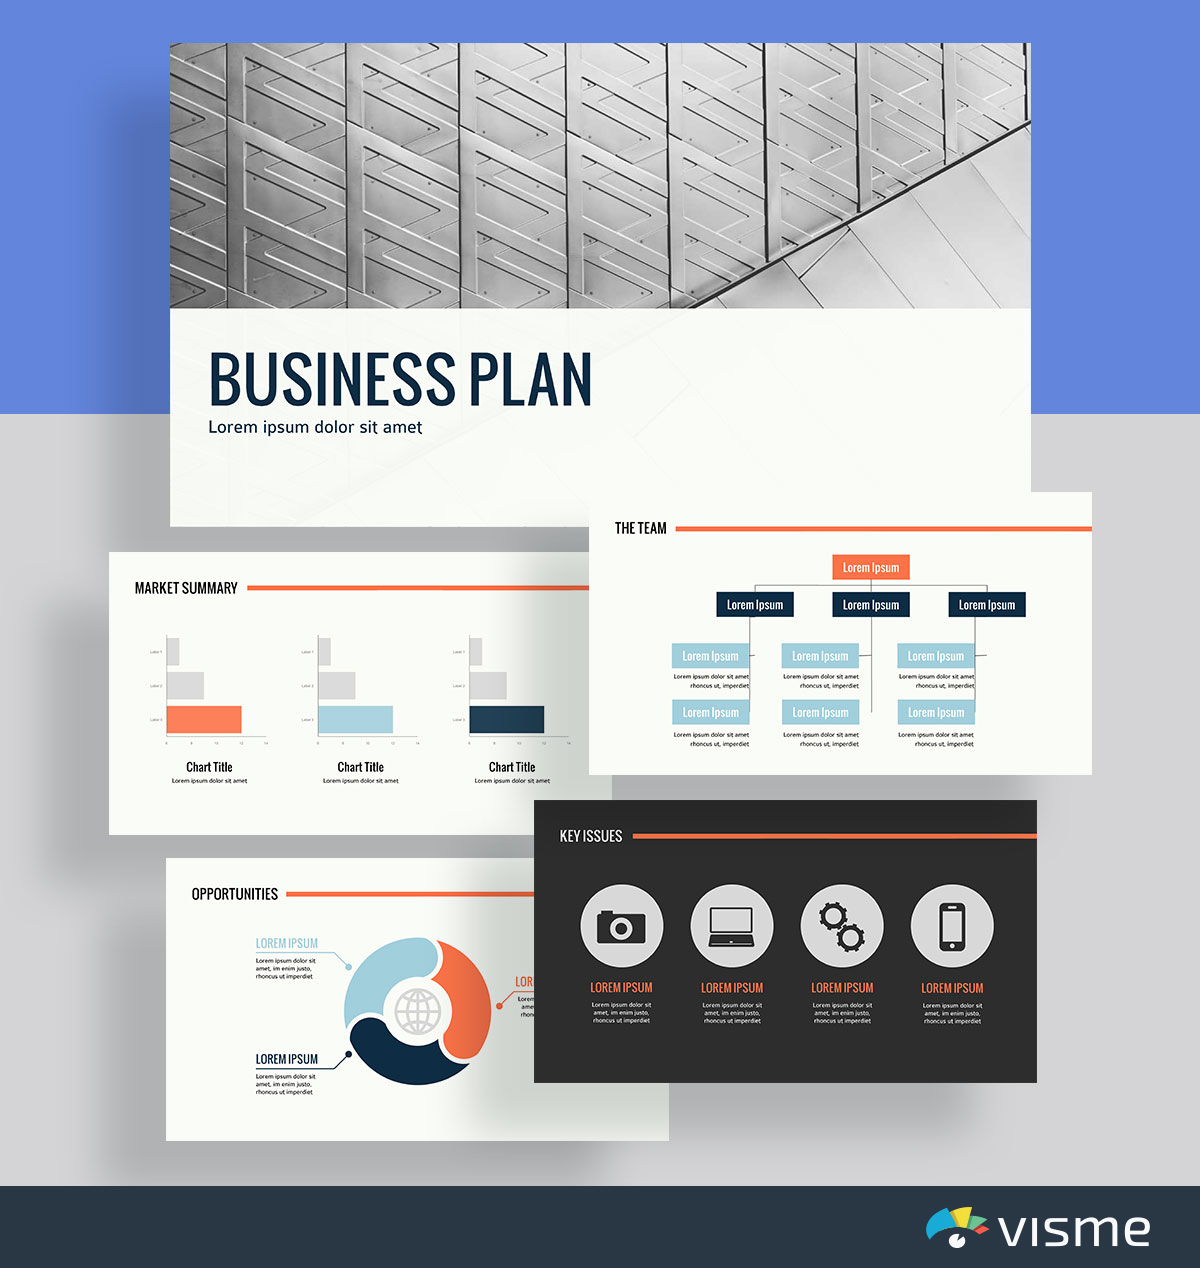 presentation slides - business plan template visme